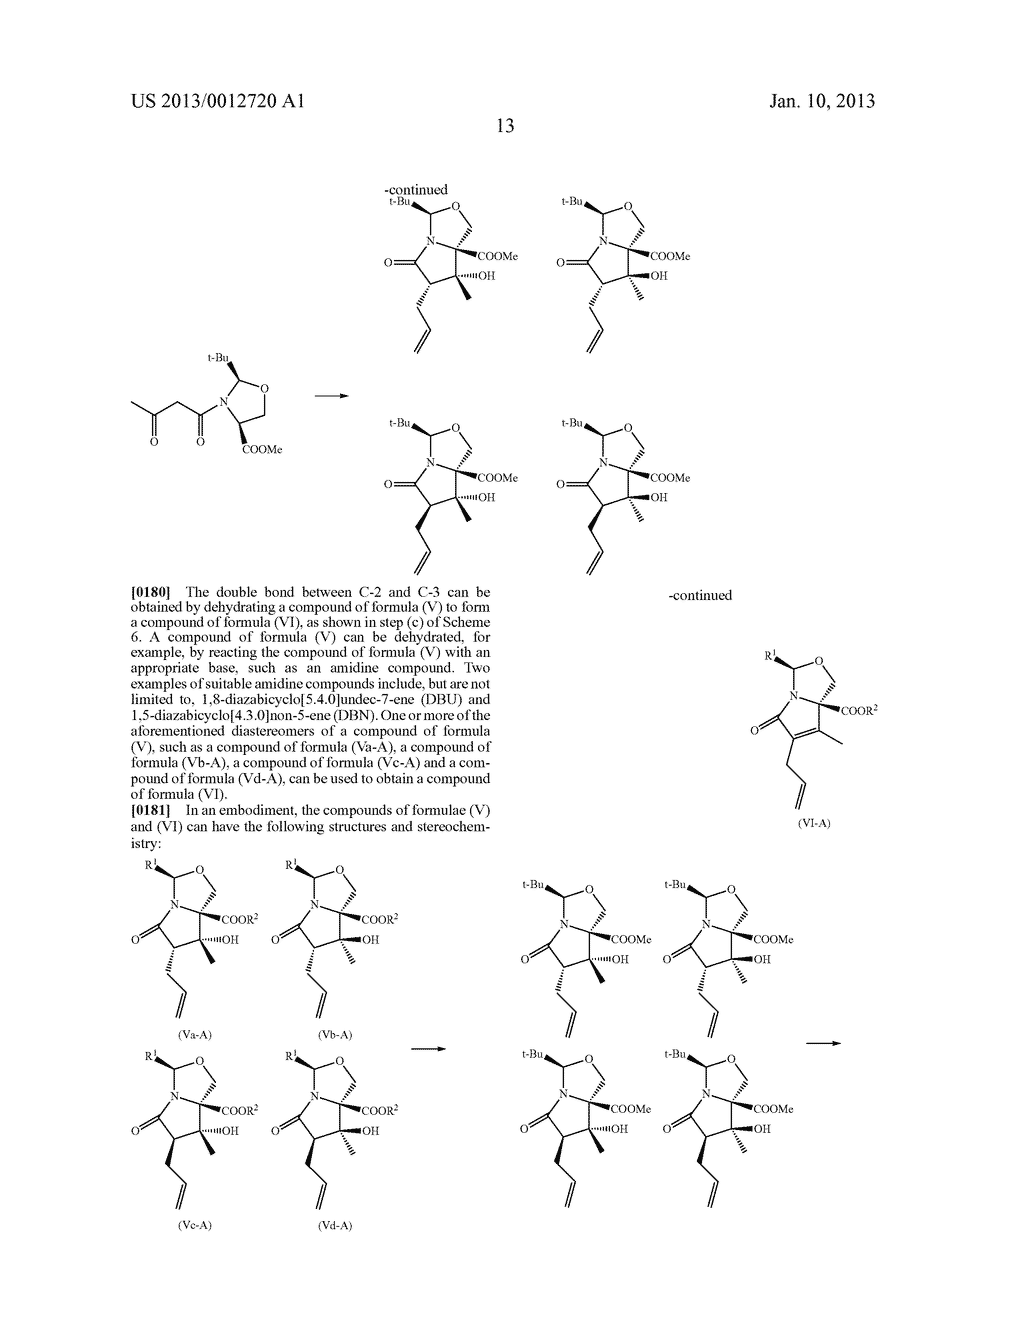 TOTAL SYNTHESIS OF SALINOSPORAMIDE A AND ANALOGS THEREOF - diagram, schematic, and image 75